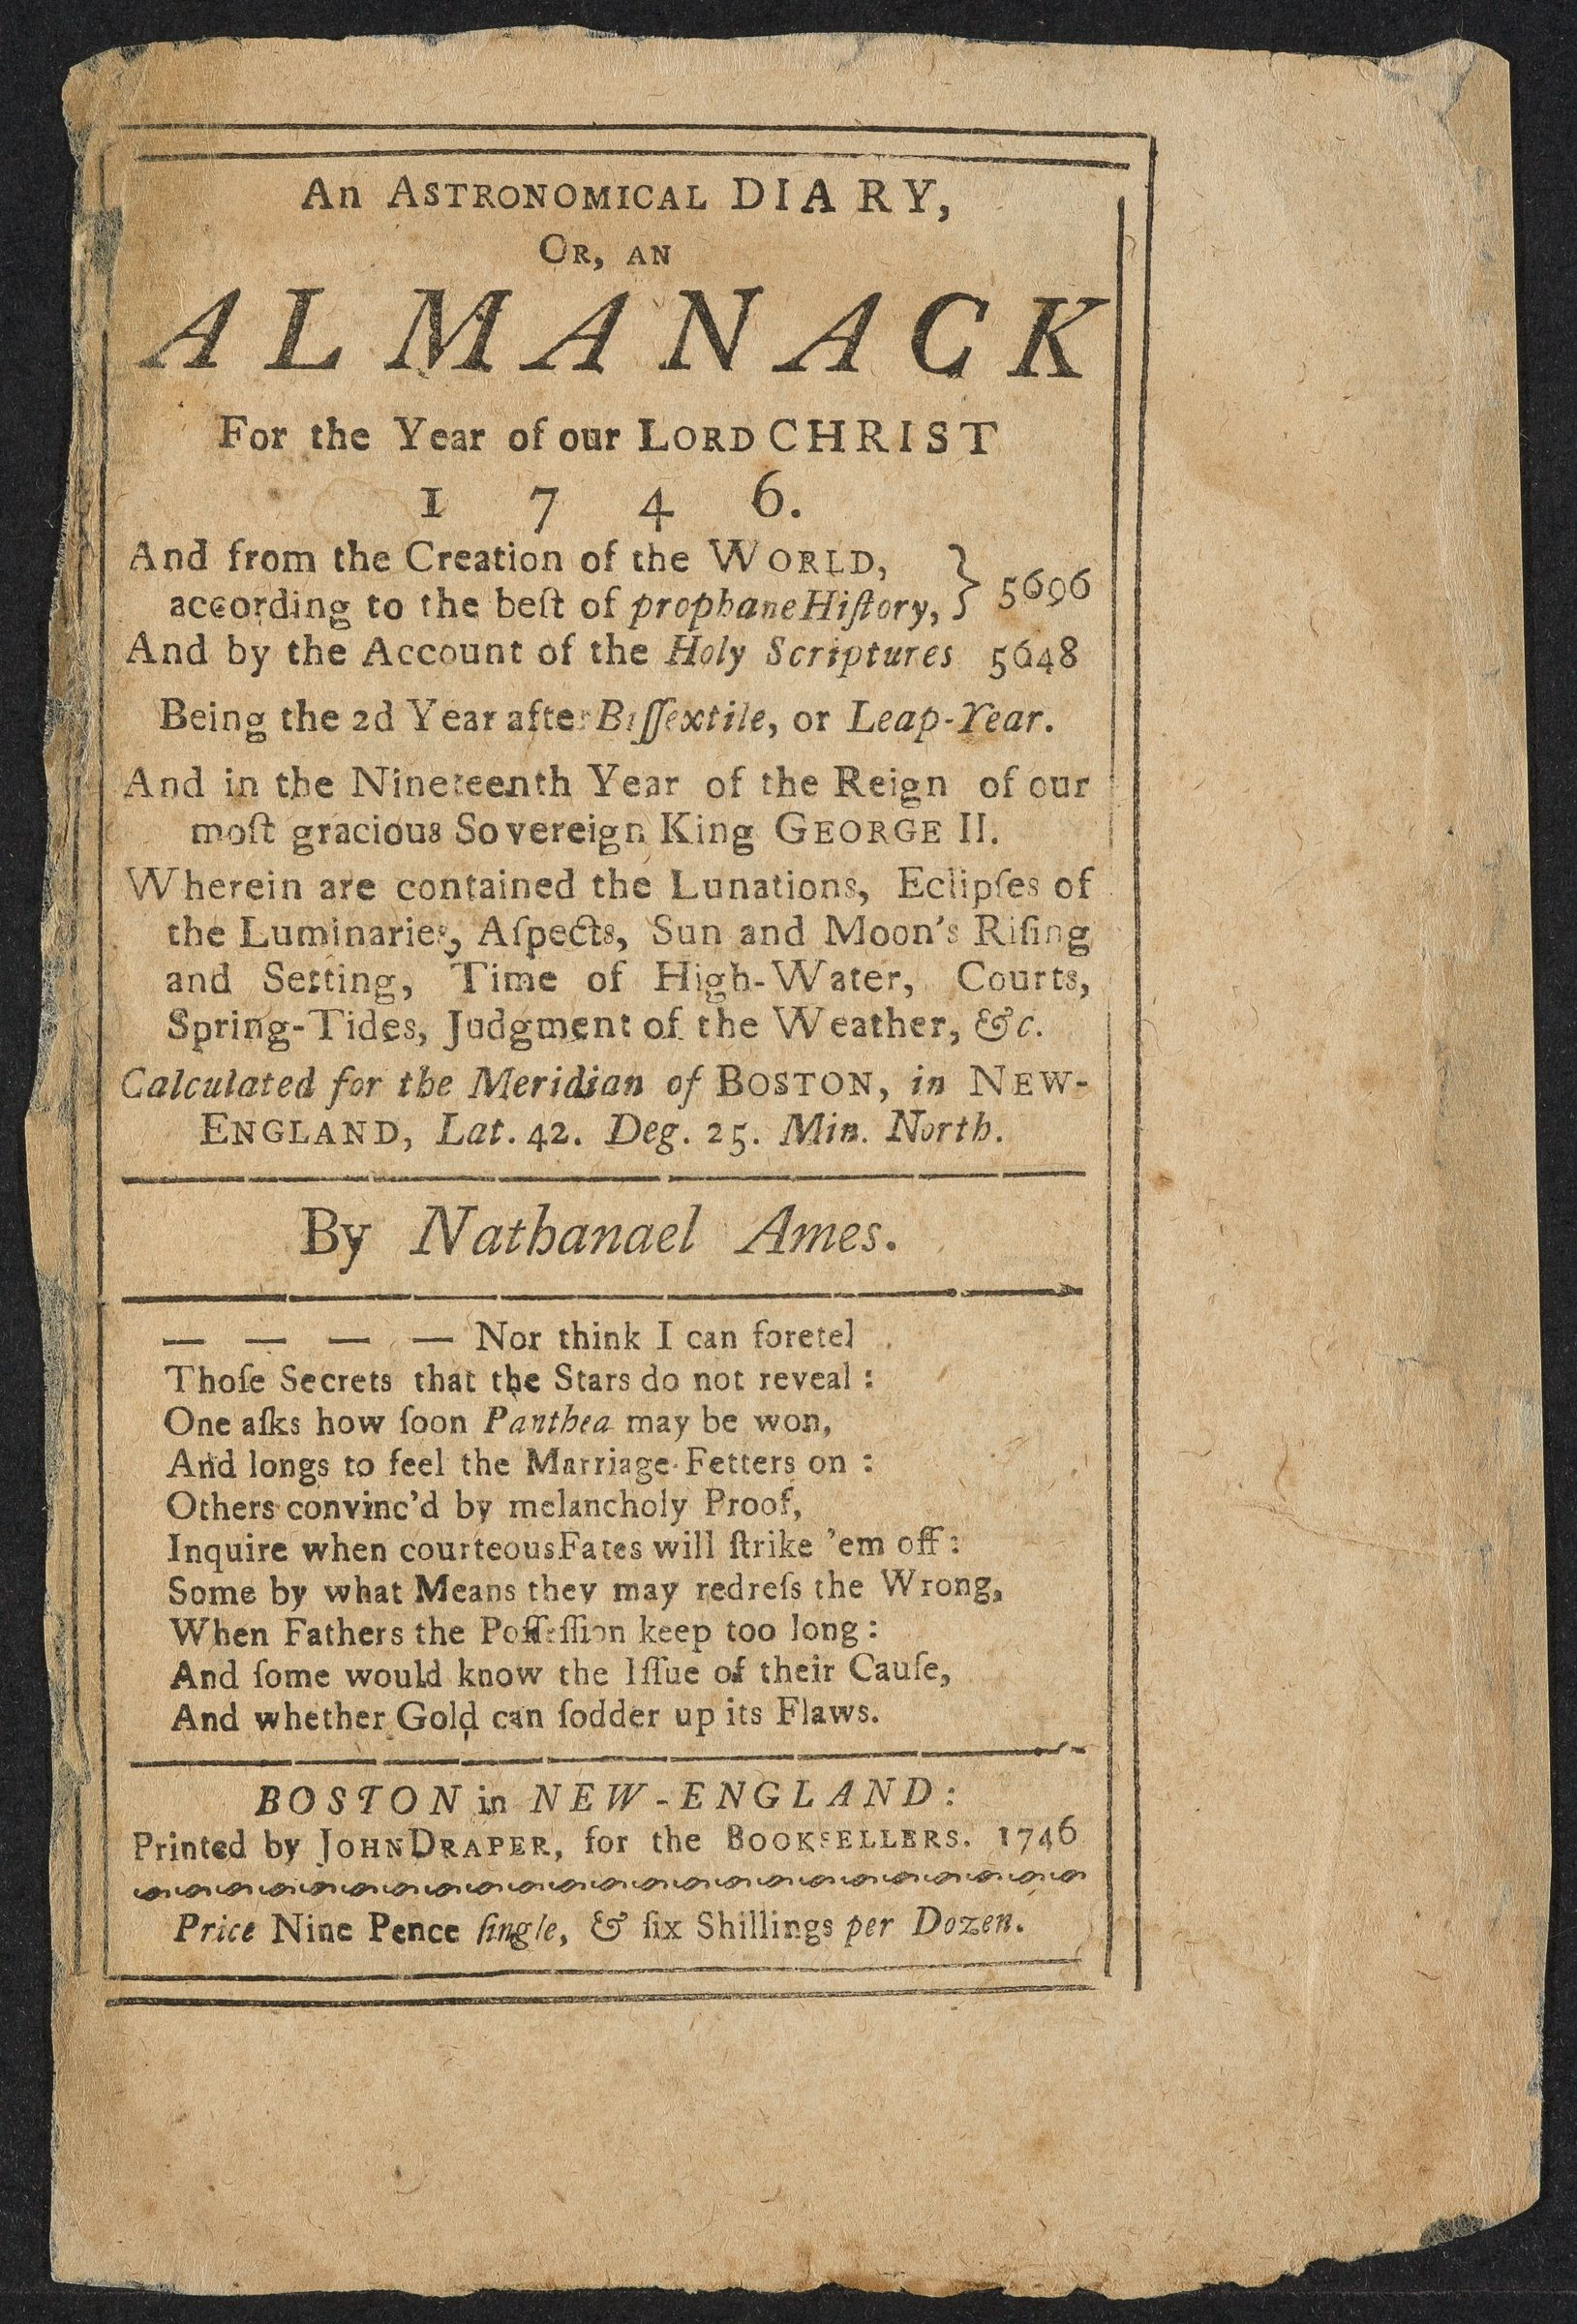 Annotated almanac, 1746